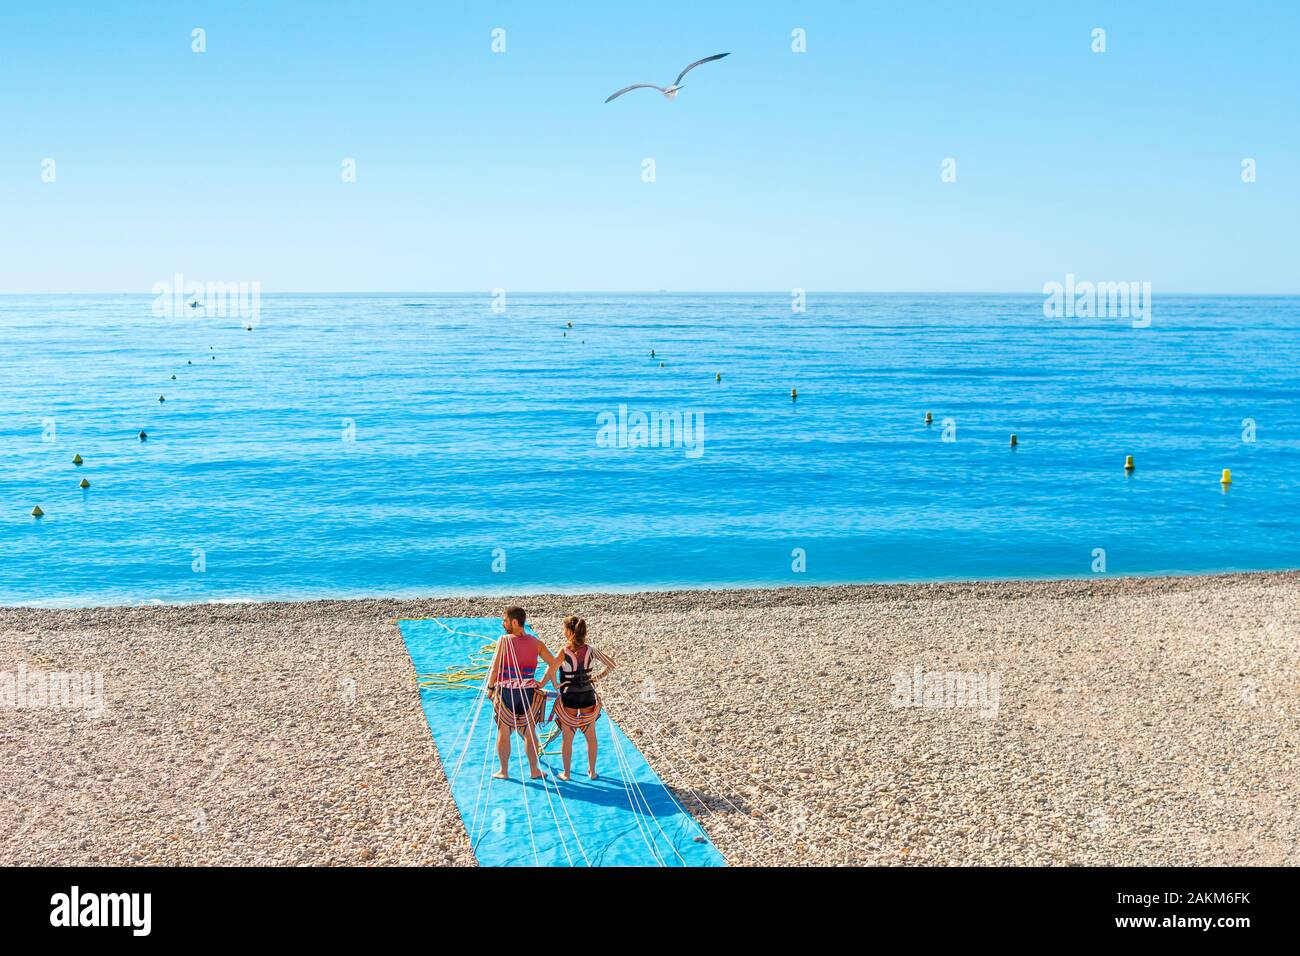 A young couple waits for a boat to being parasailing on the pebbly beach of the Bay of Angels on the French Riviera of the Mediterranean Sea. Stock Photo